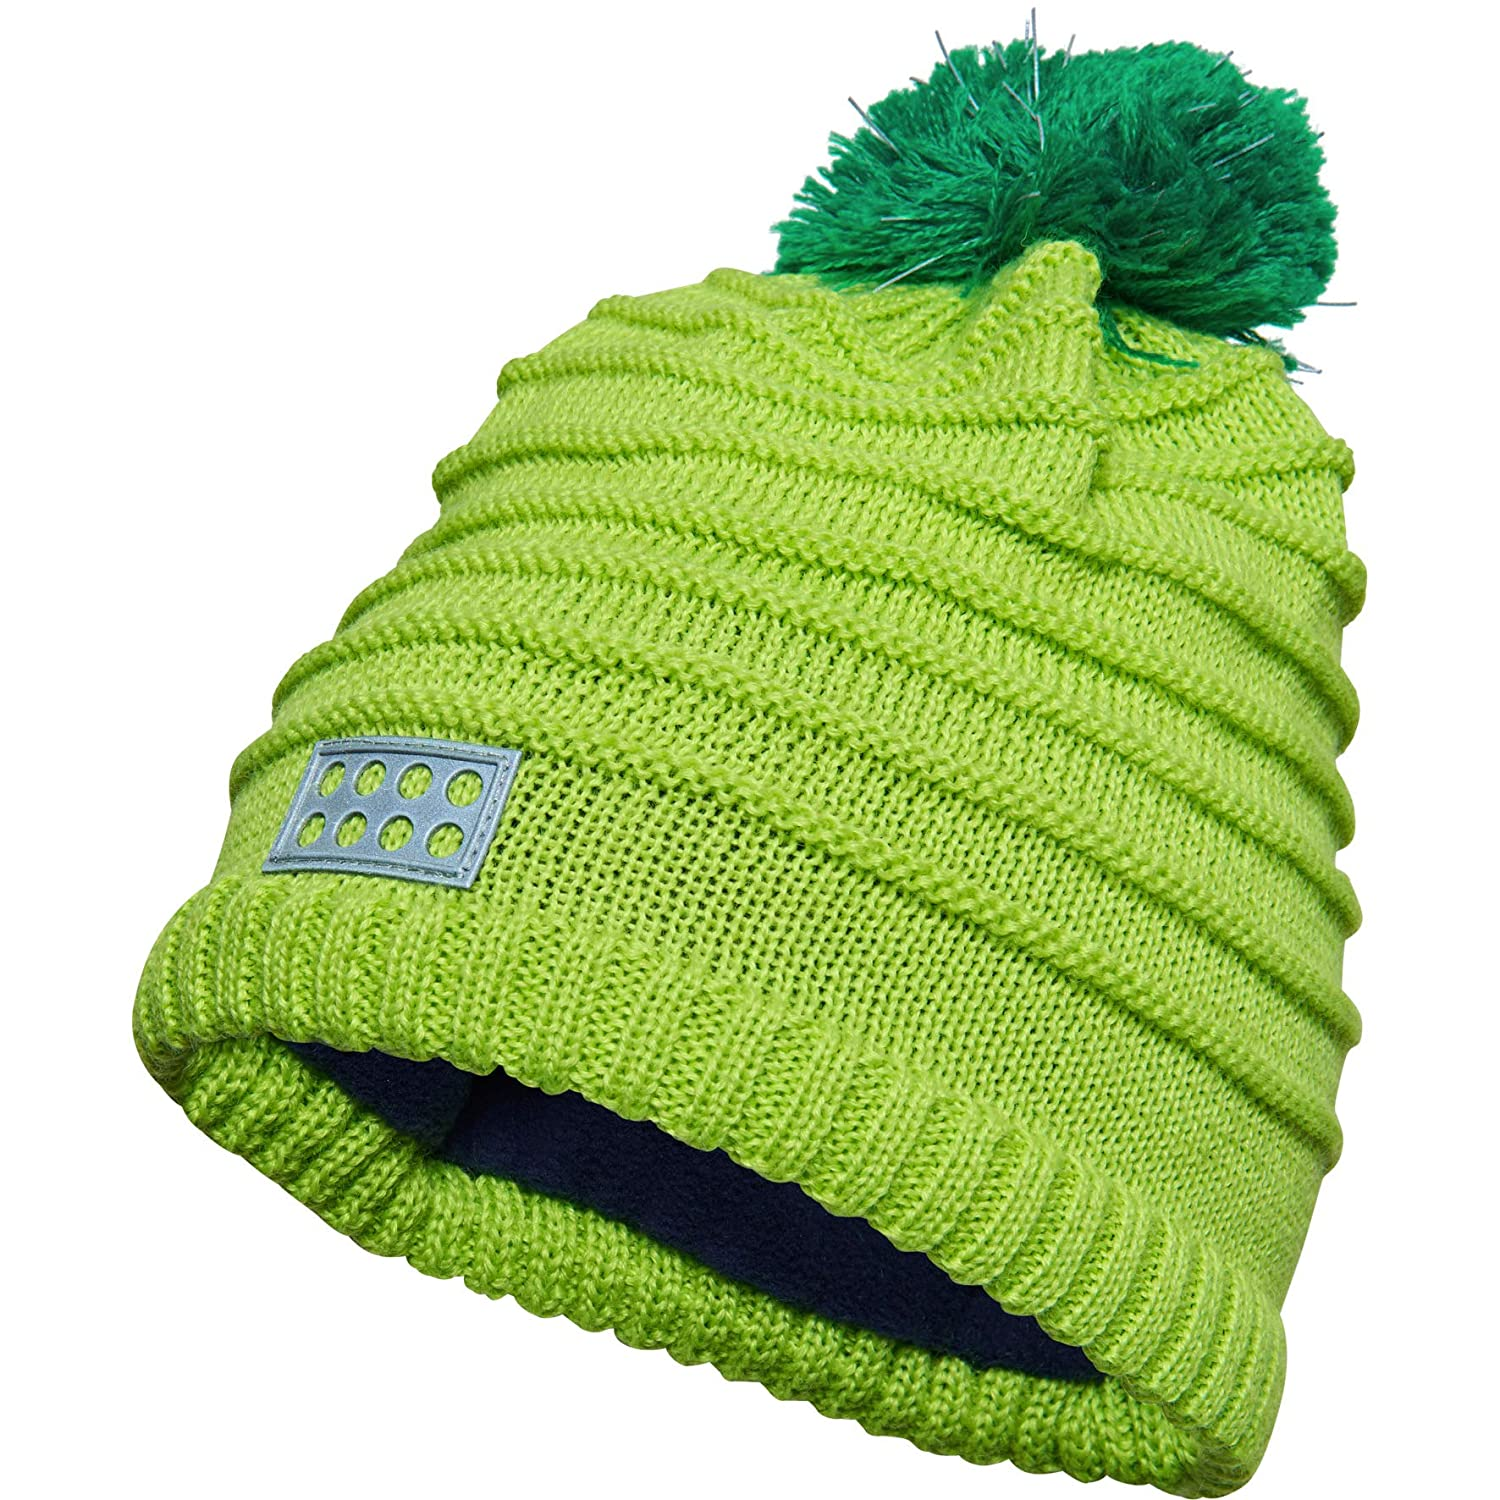 cd3f070c Amazon.com : LEGO Wear Kids & Baby Fleece-Lined Wool Knit Hat with  Reflective Pom Pom & Detail, Lime Green, 8-11 Yr : Clothing